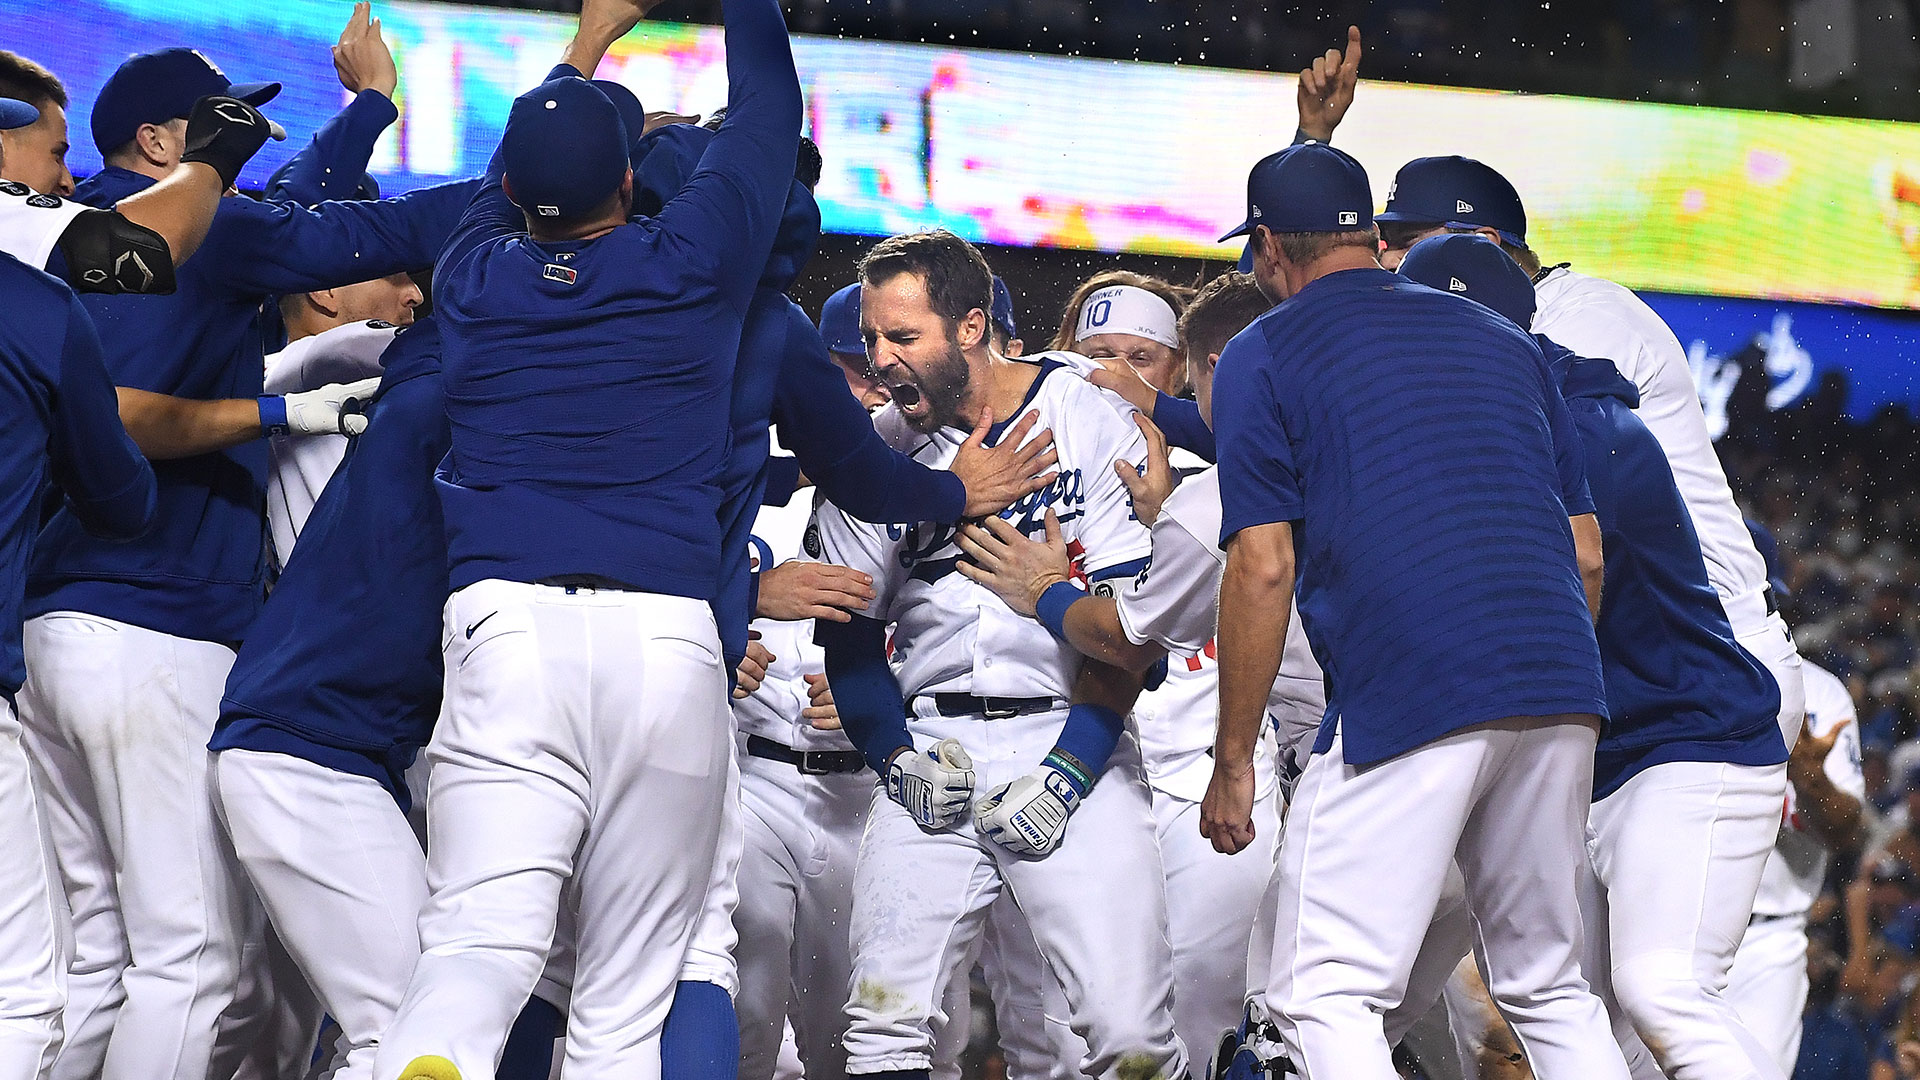 Los Angeles Dodgers celebrates after the game-winning two-run home run by Chris Taylor